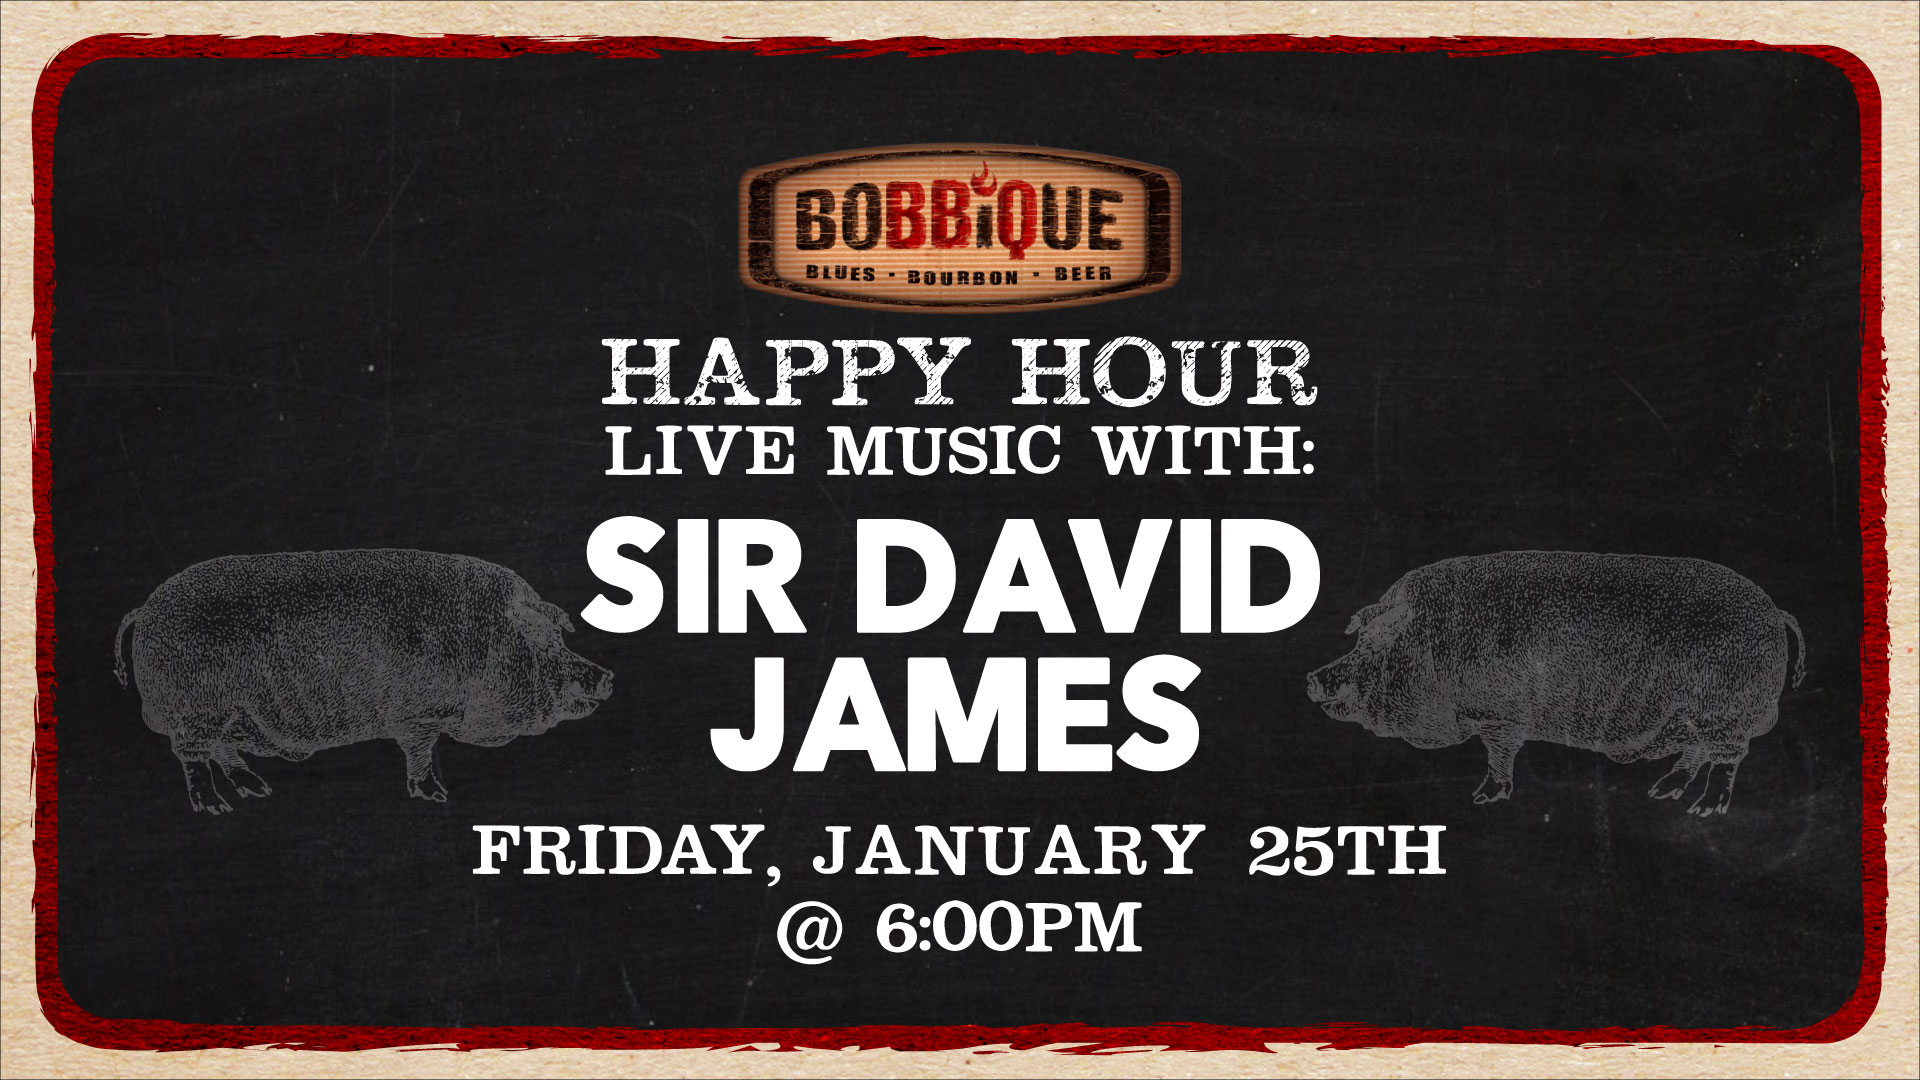 Happy Hour with Sir David James